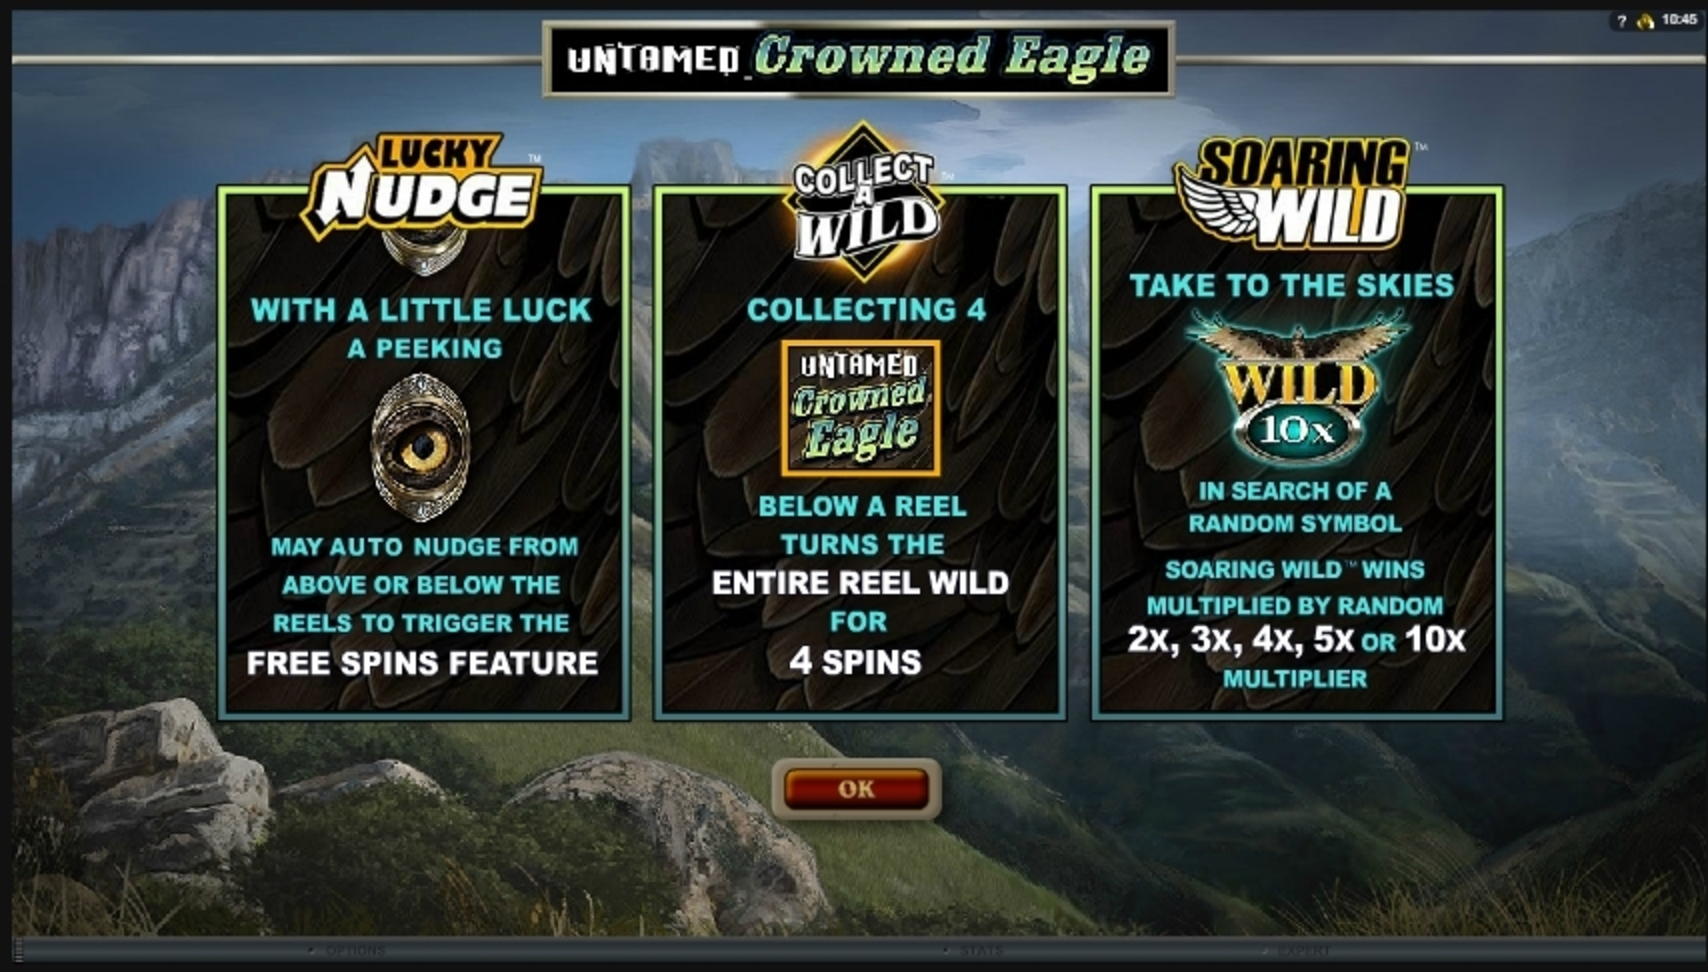 Play Untamed Crowned Eagle Free Casino Slot Game by Microgaming